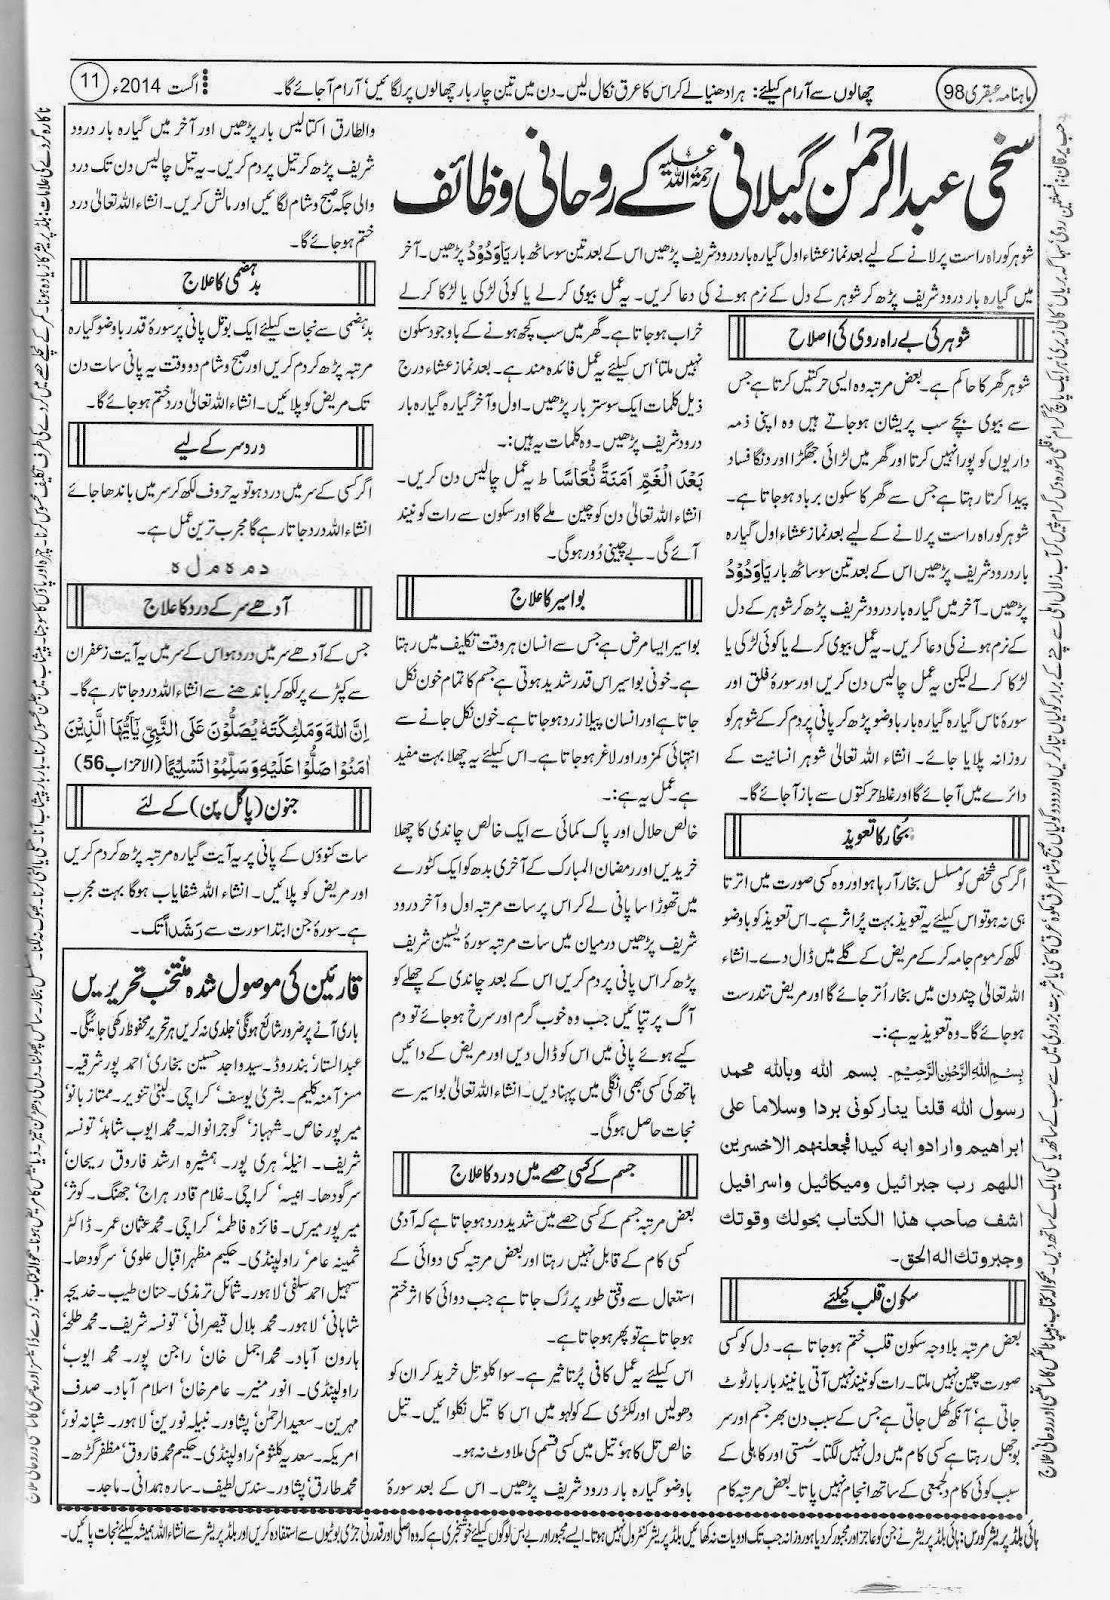 Ubqari August 2014 Page 11